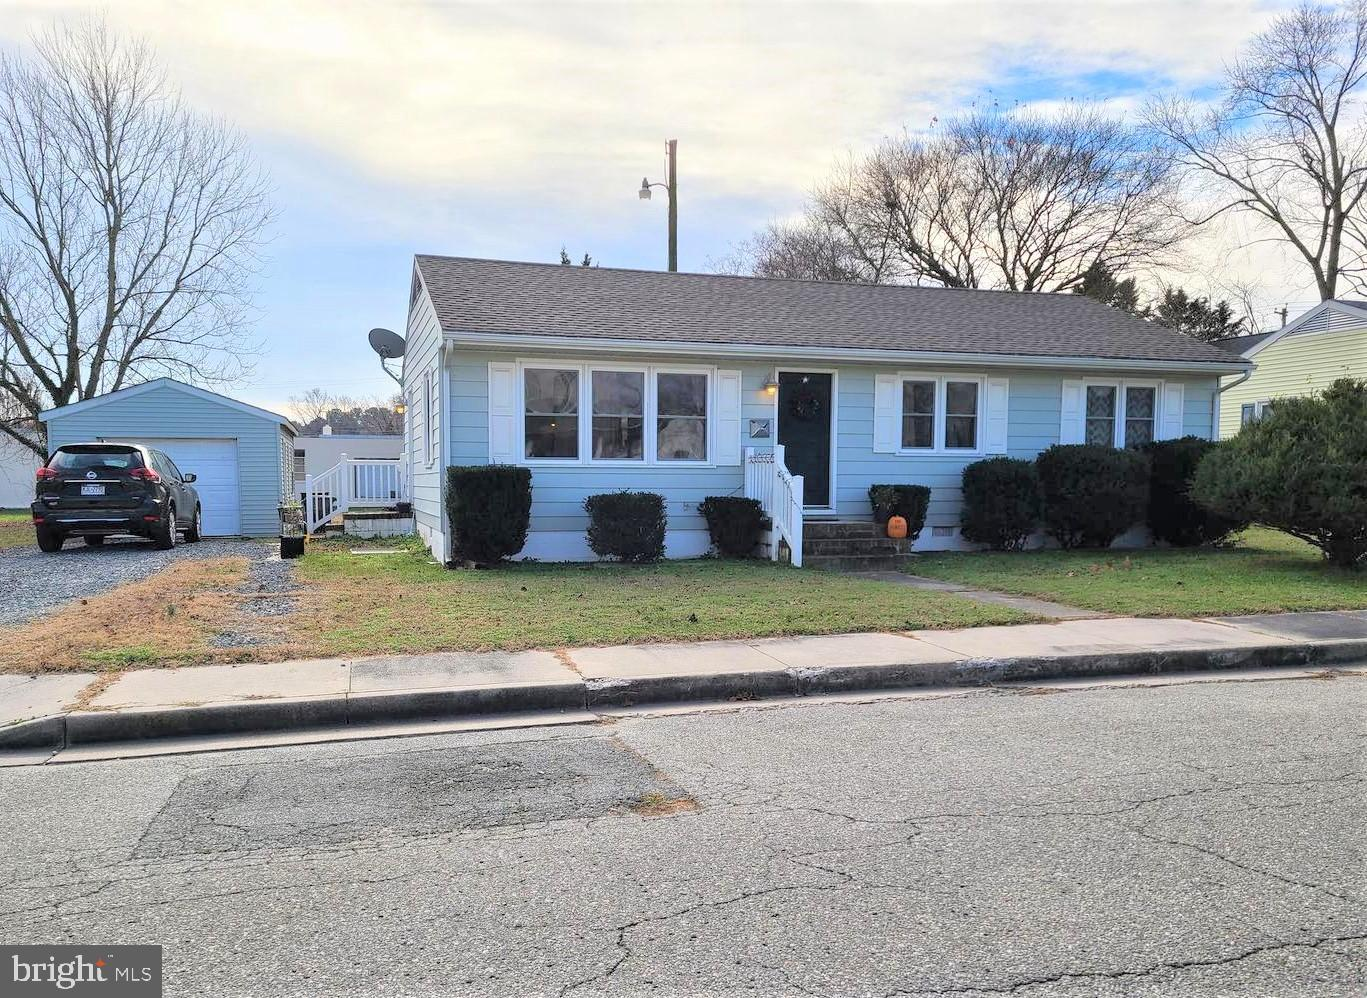 Very nice 3-bedrm, 1-bath home located in the town of Delmar Maryland. Home shows well with architec